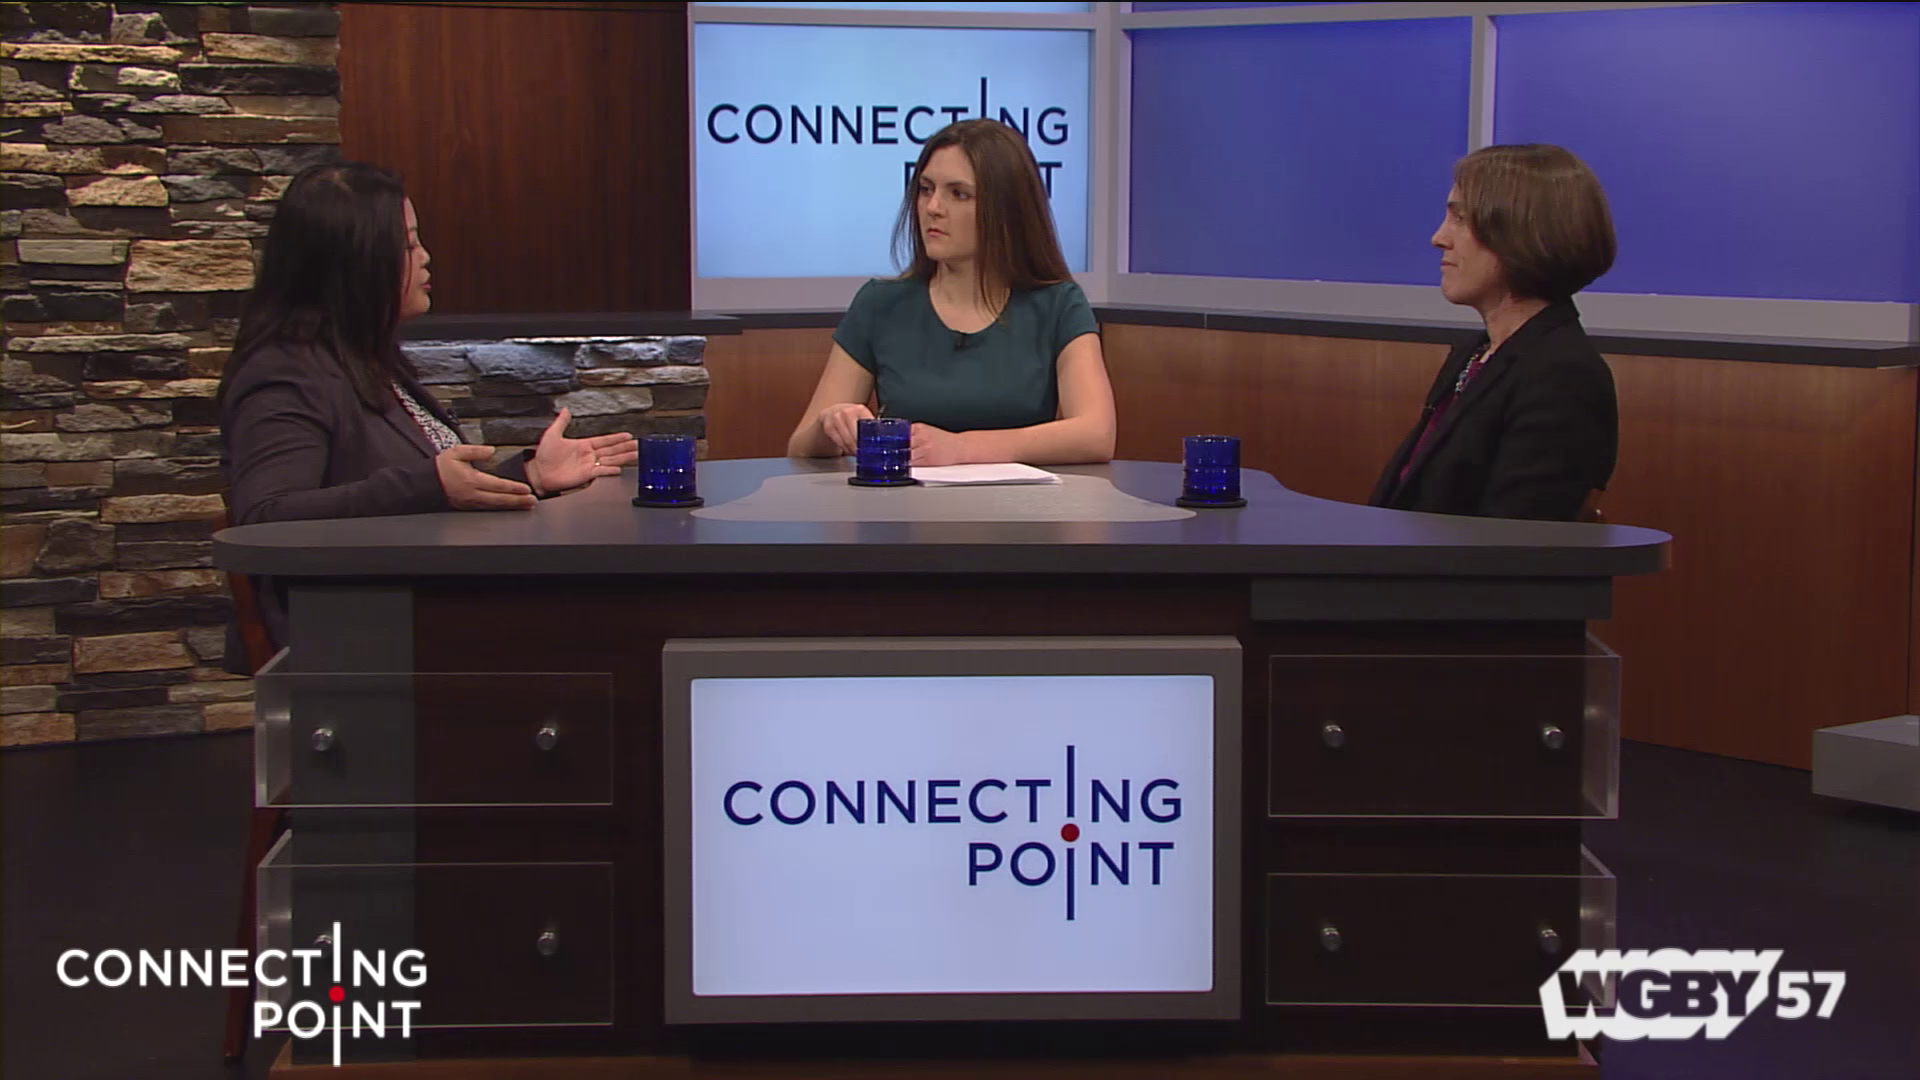 This fall, the #MeToo movement sparked a public conversation about sexual assault. Smith College's Lauren Duncan discusses the evolution and implications of the #metoo & #timesup movements, while attorney Lan Kantany explains some of the legal hurdles around prosecuting sexual harassment.